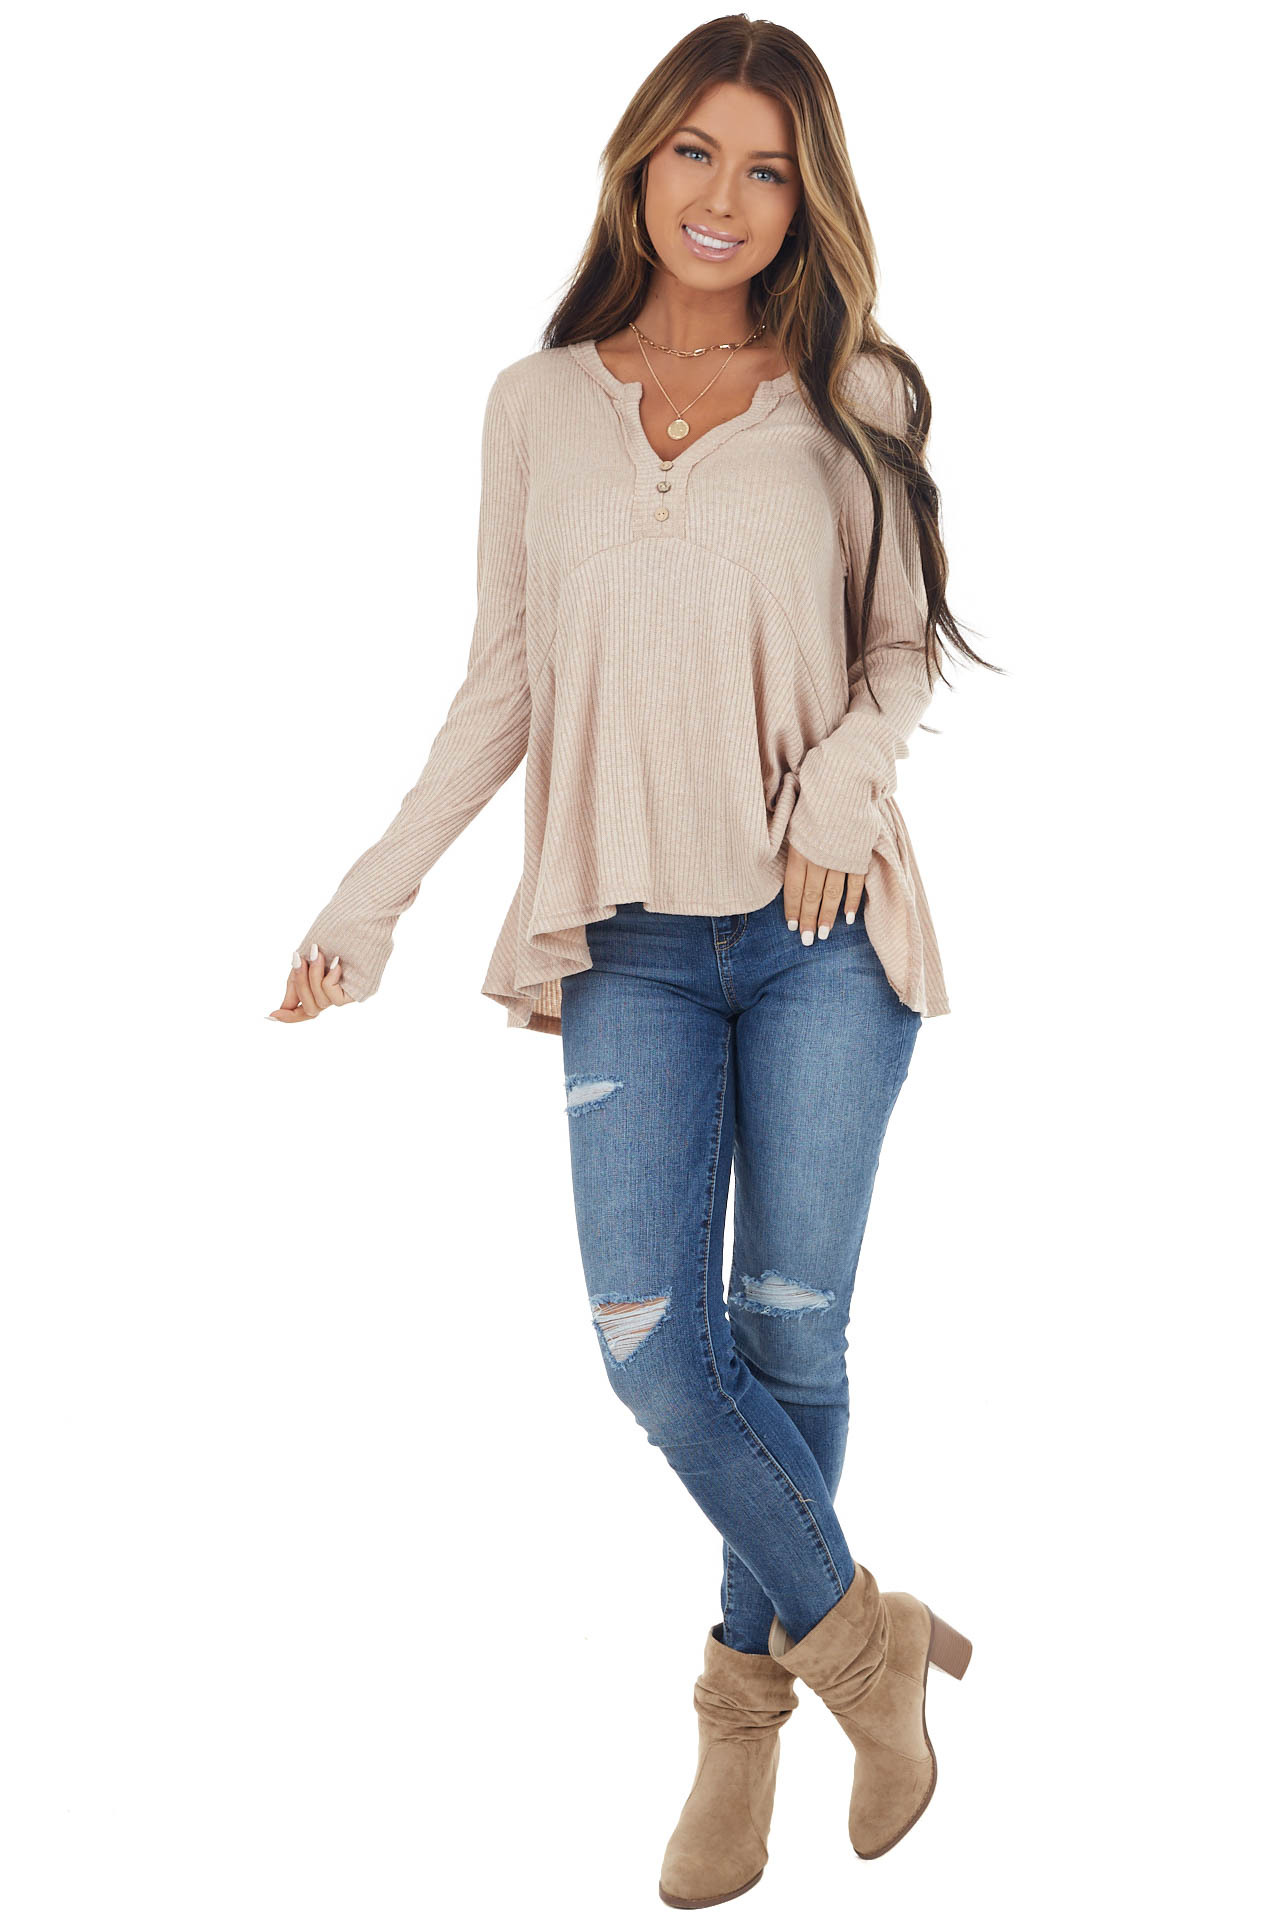 Sand Notch Neck Babydoll Knit Top with Button Detail